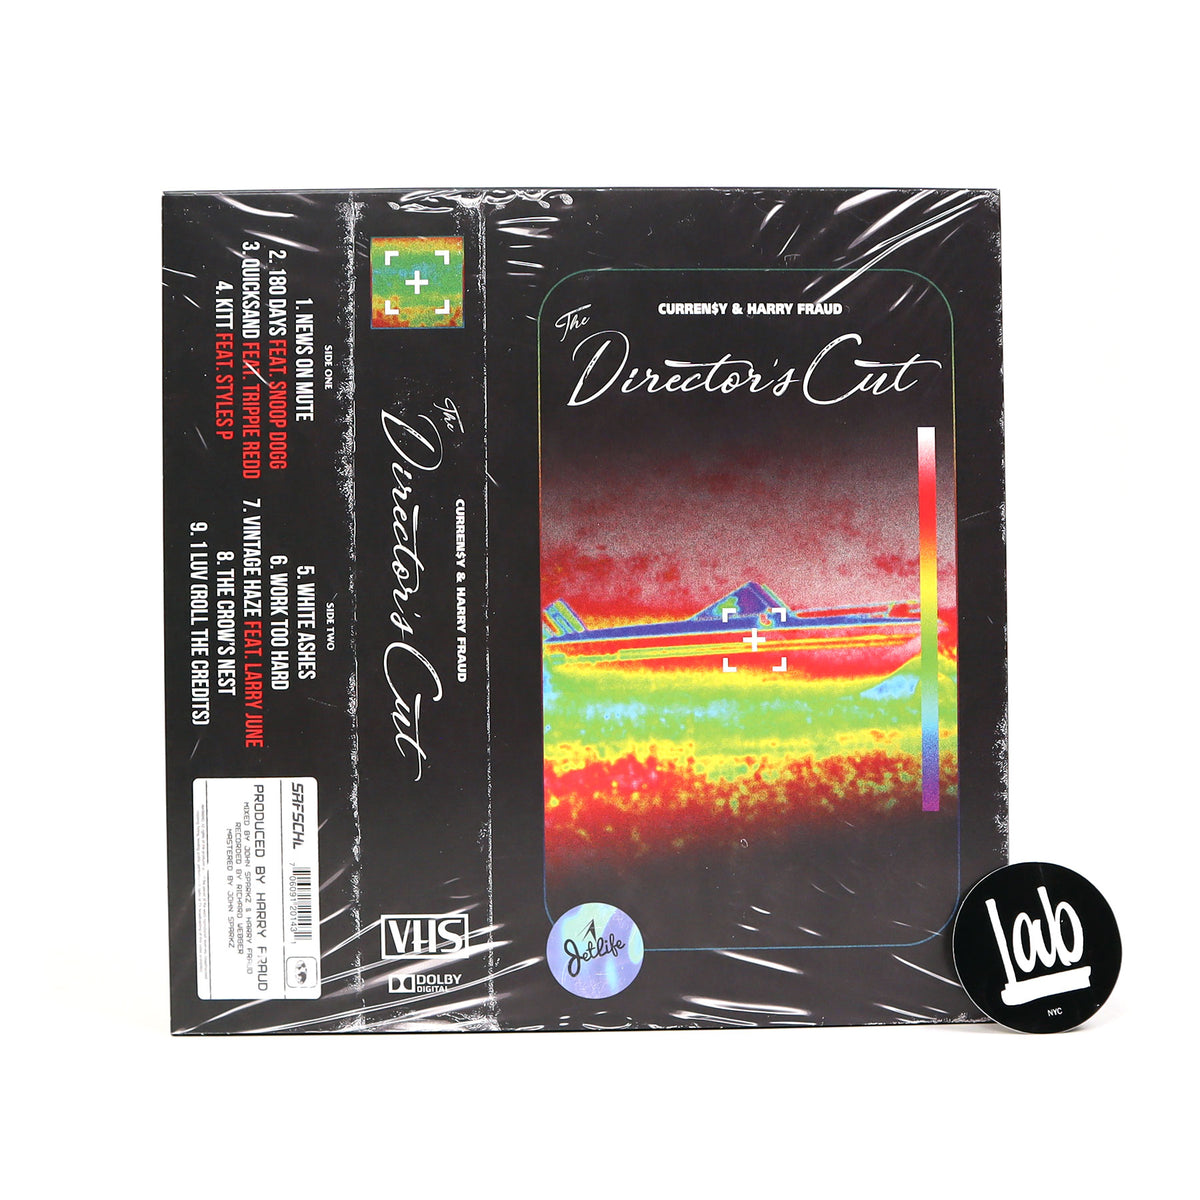 Curren$y & Harry Fraud: The Director's Cut Vinyl